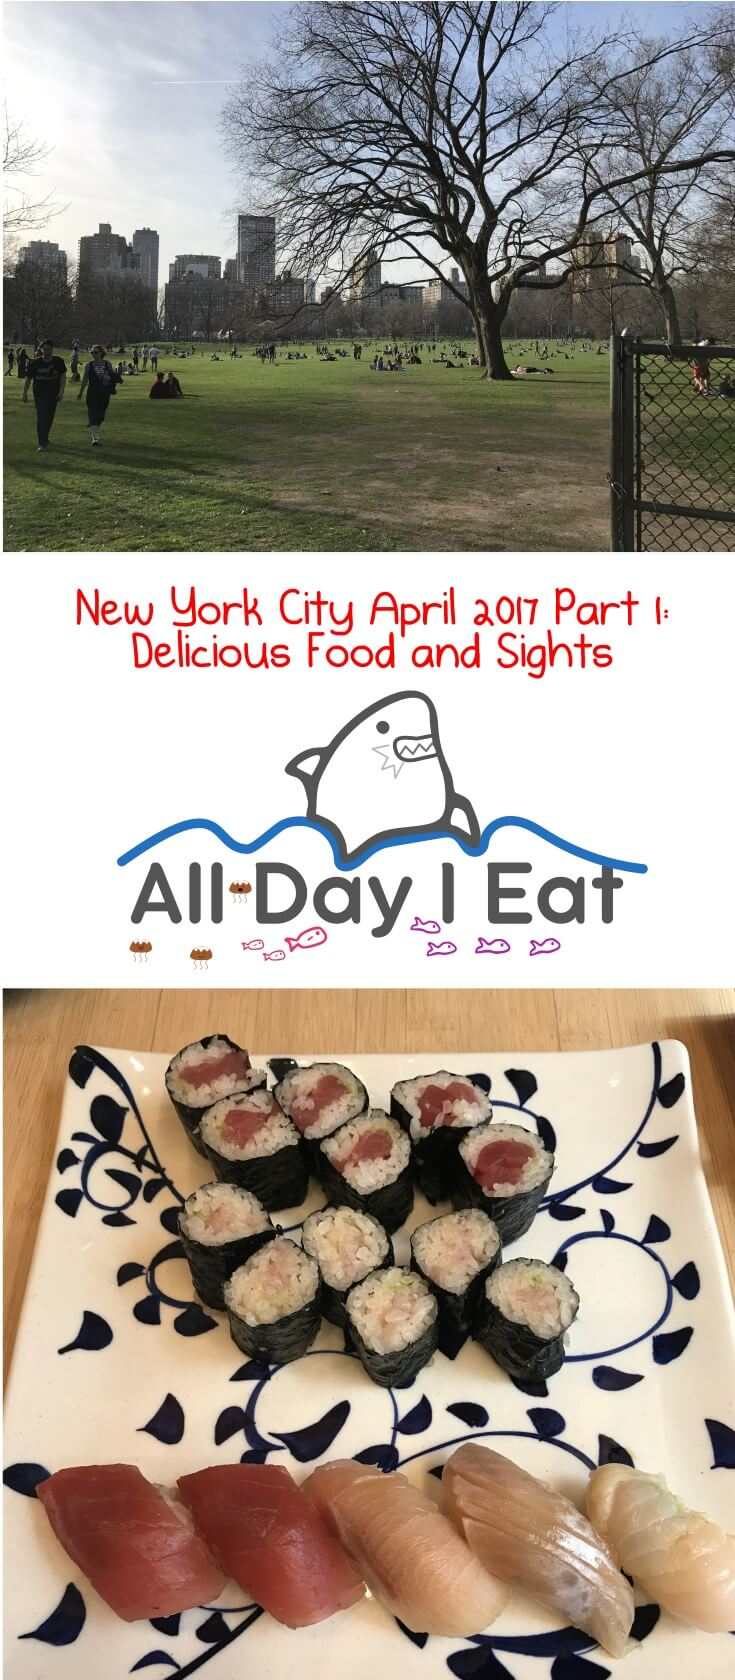 New York City April 2017 Part 1: Delicious Food and Sights. We had 4 full days to eat and explore. Click for details, pictures, and recommendations on where to eat!   www.alldayieat.com